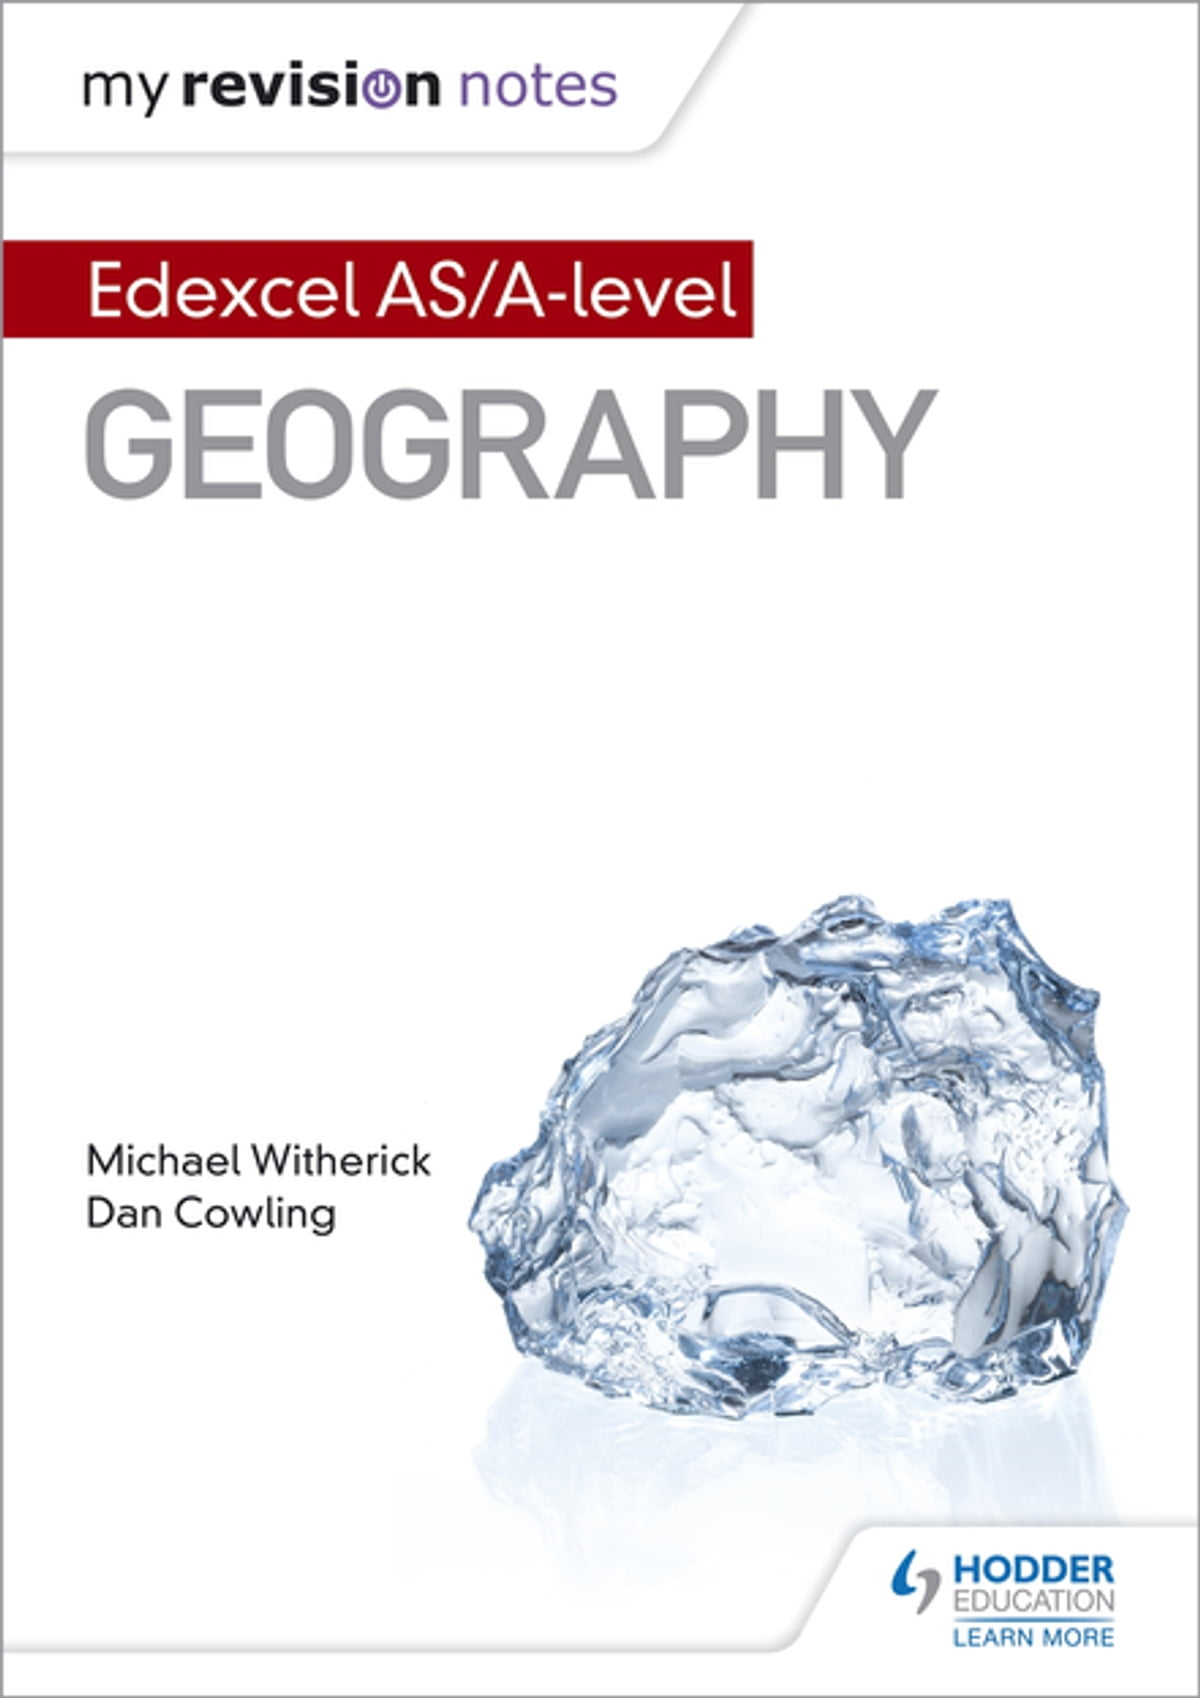 My Revision Notes: Edexcel AS/A-level Geography ebook by Michael Witherick  - Rakuten Kobo